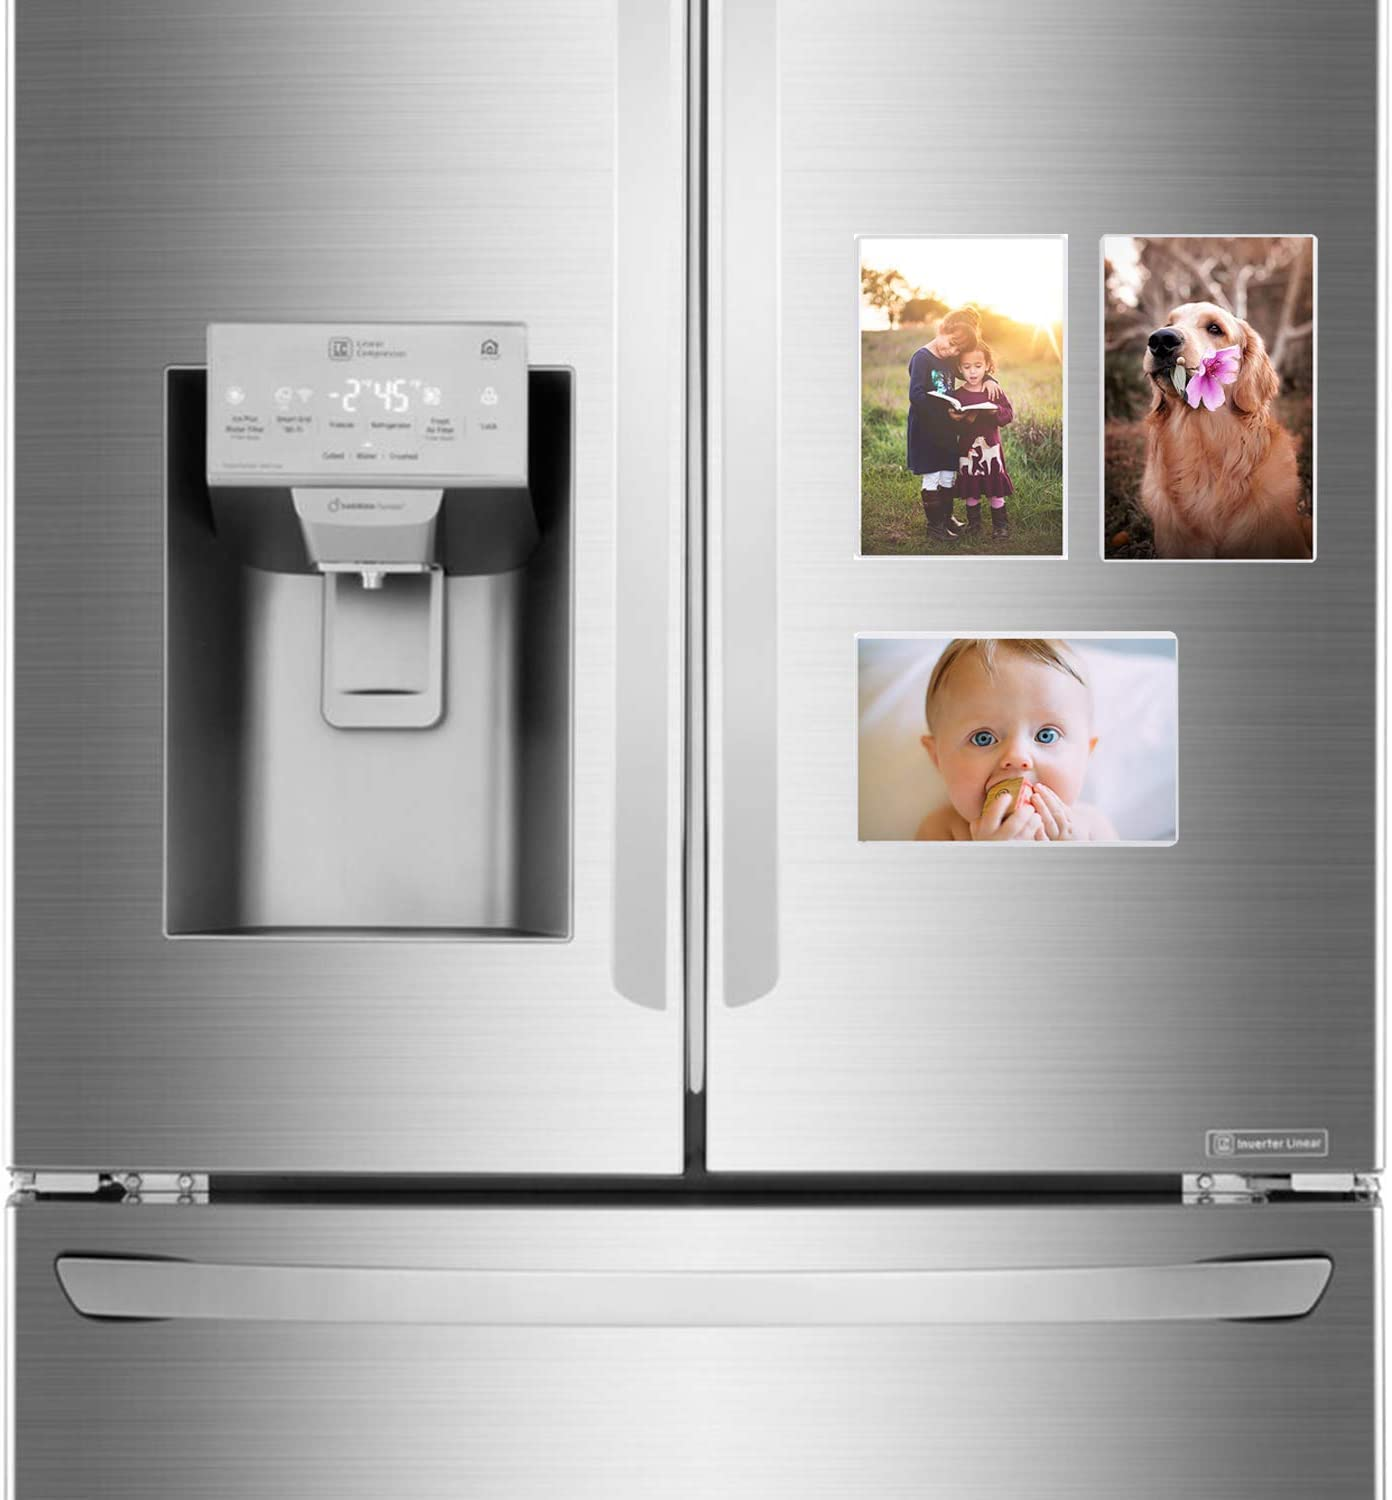 Magnetic Photo Holders for Refrigerator Holds 4x6 Photos White Magnetic Photo Pockets 1 Magnetic Photo Picture Frames